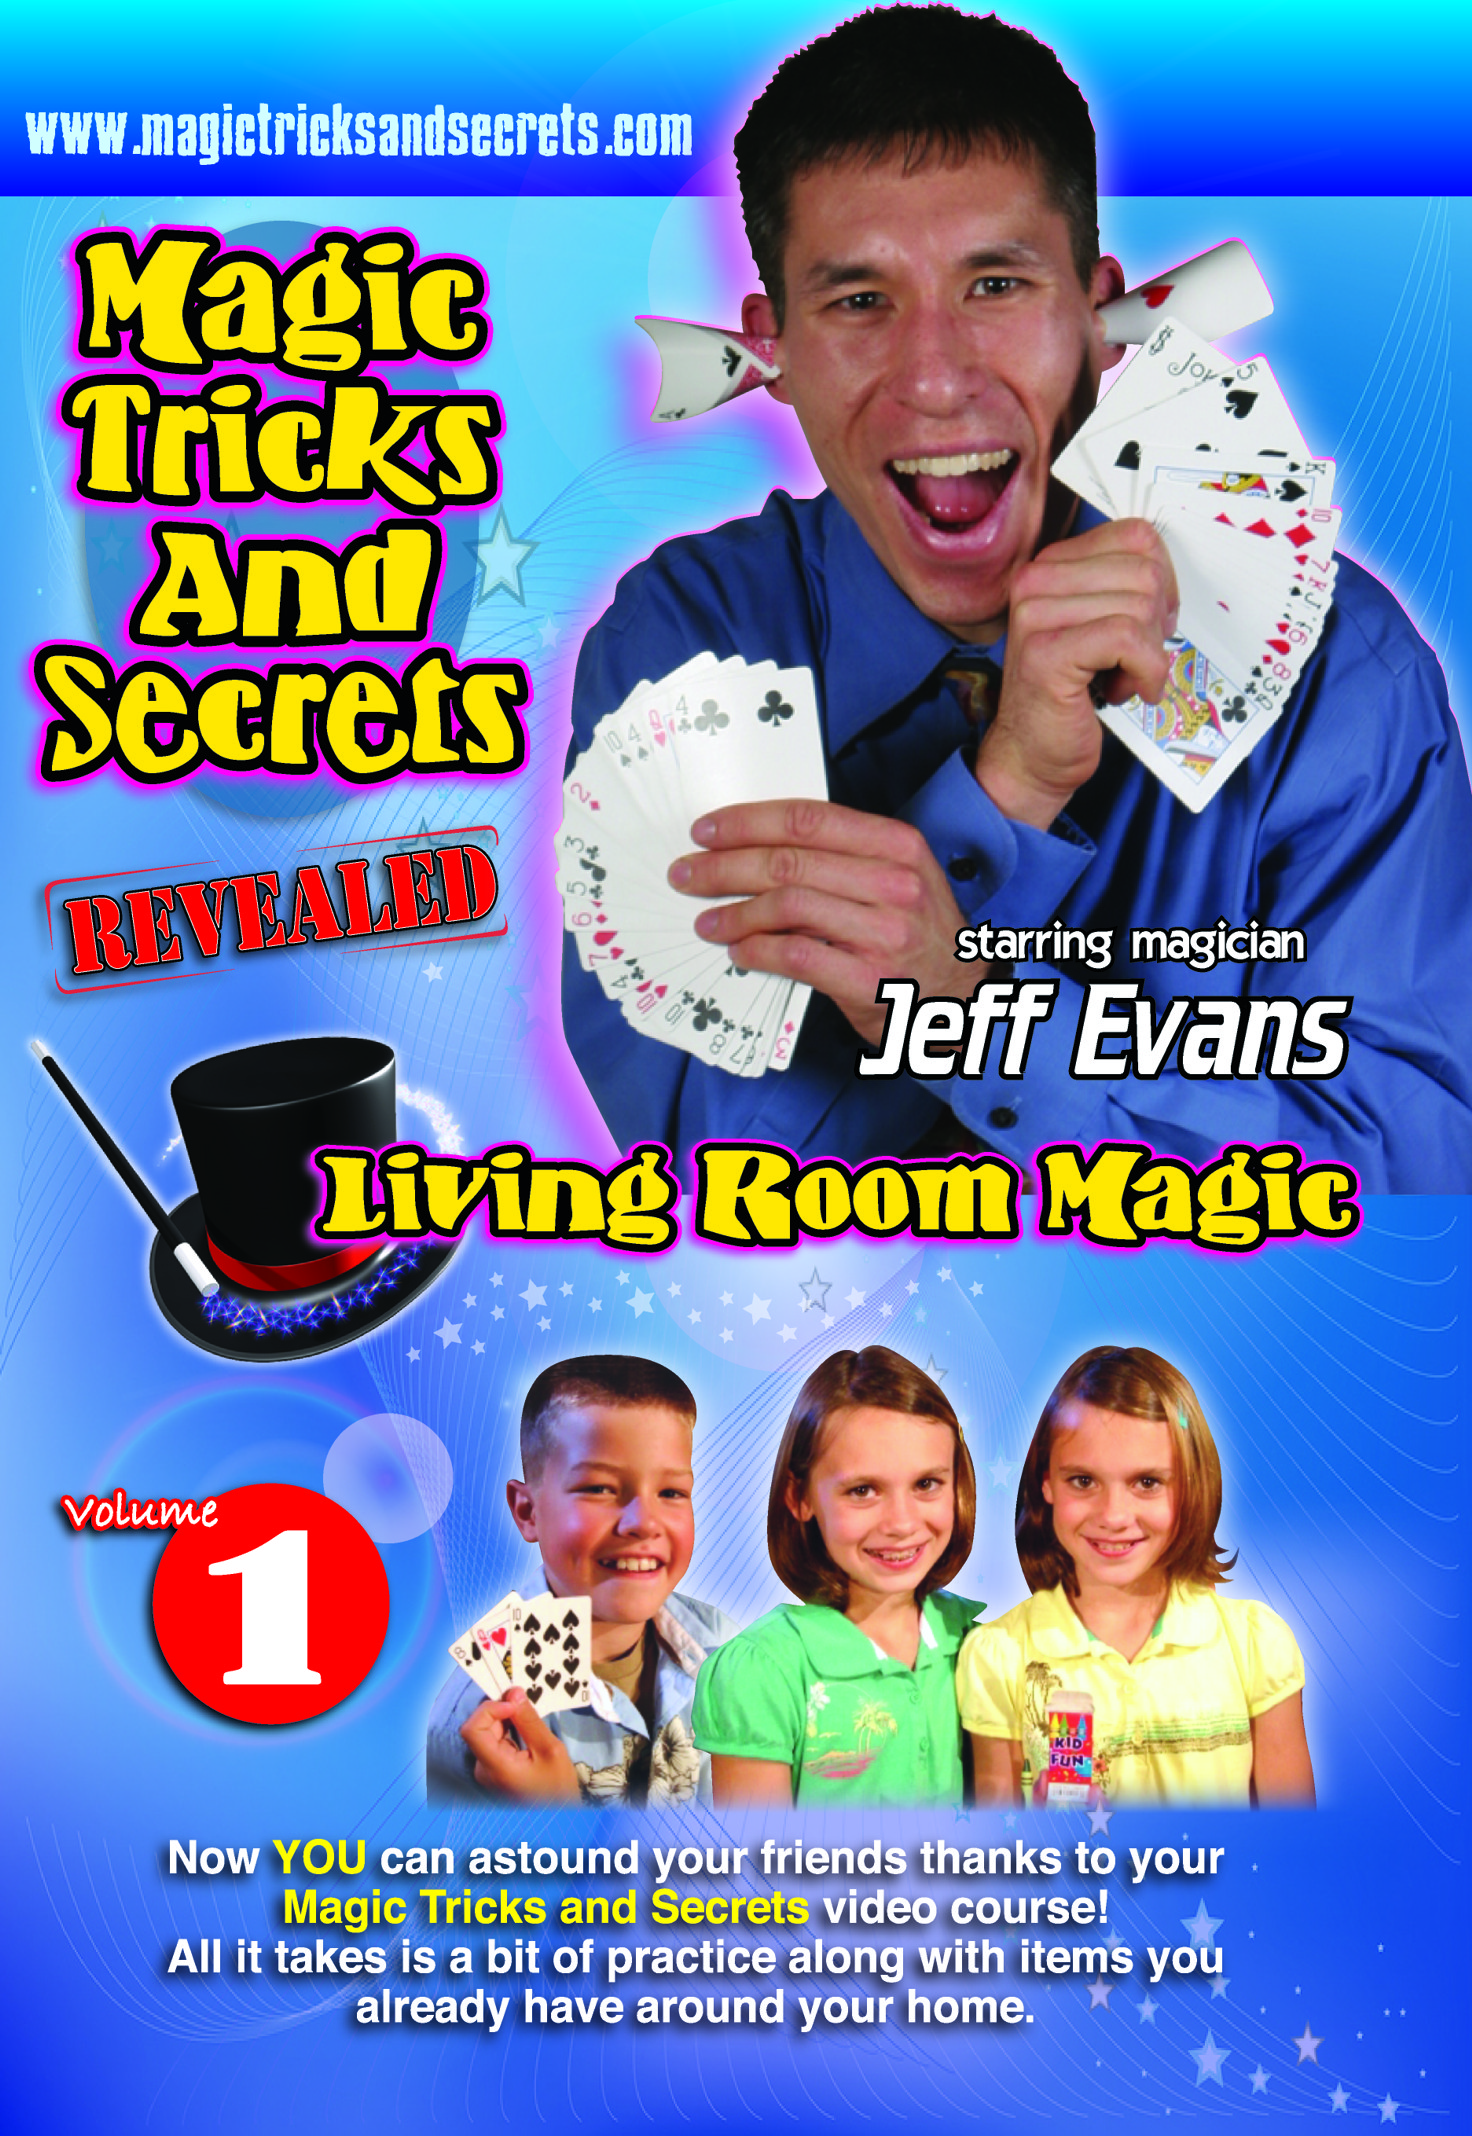 Magic Tricks and Secrets DVDs - quantity 5